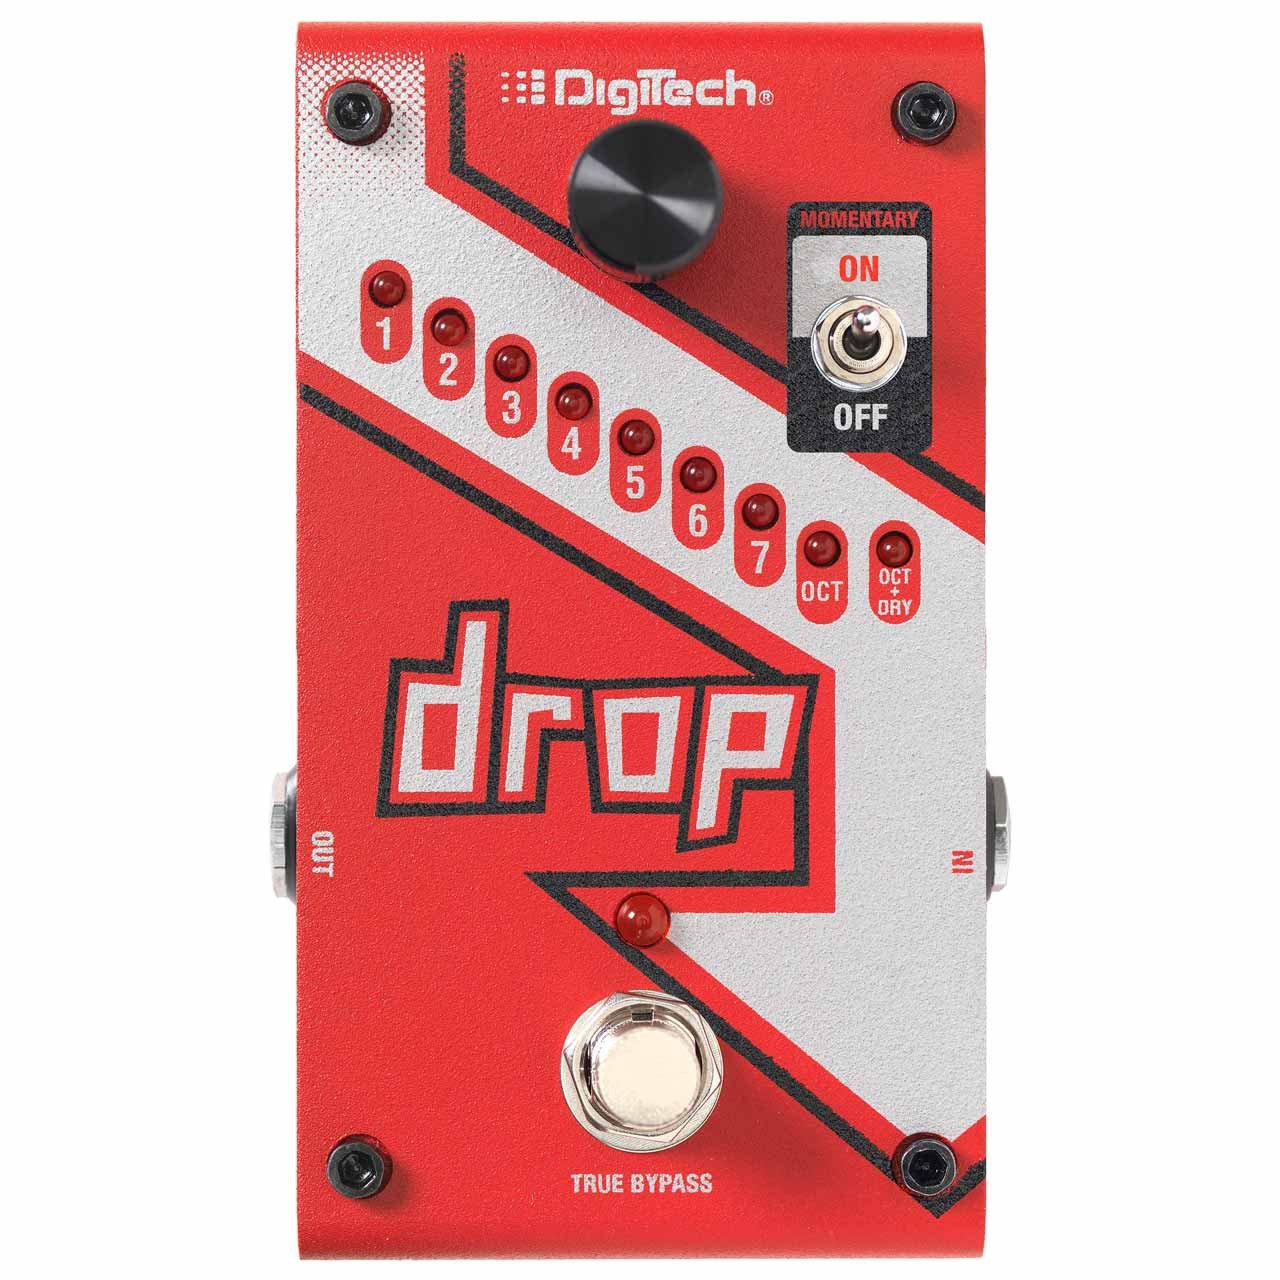 Pedals & Effects - Digitech DROP Guitar Pedal